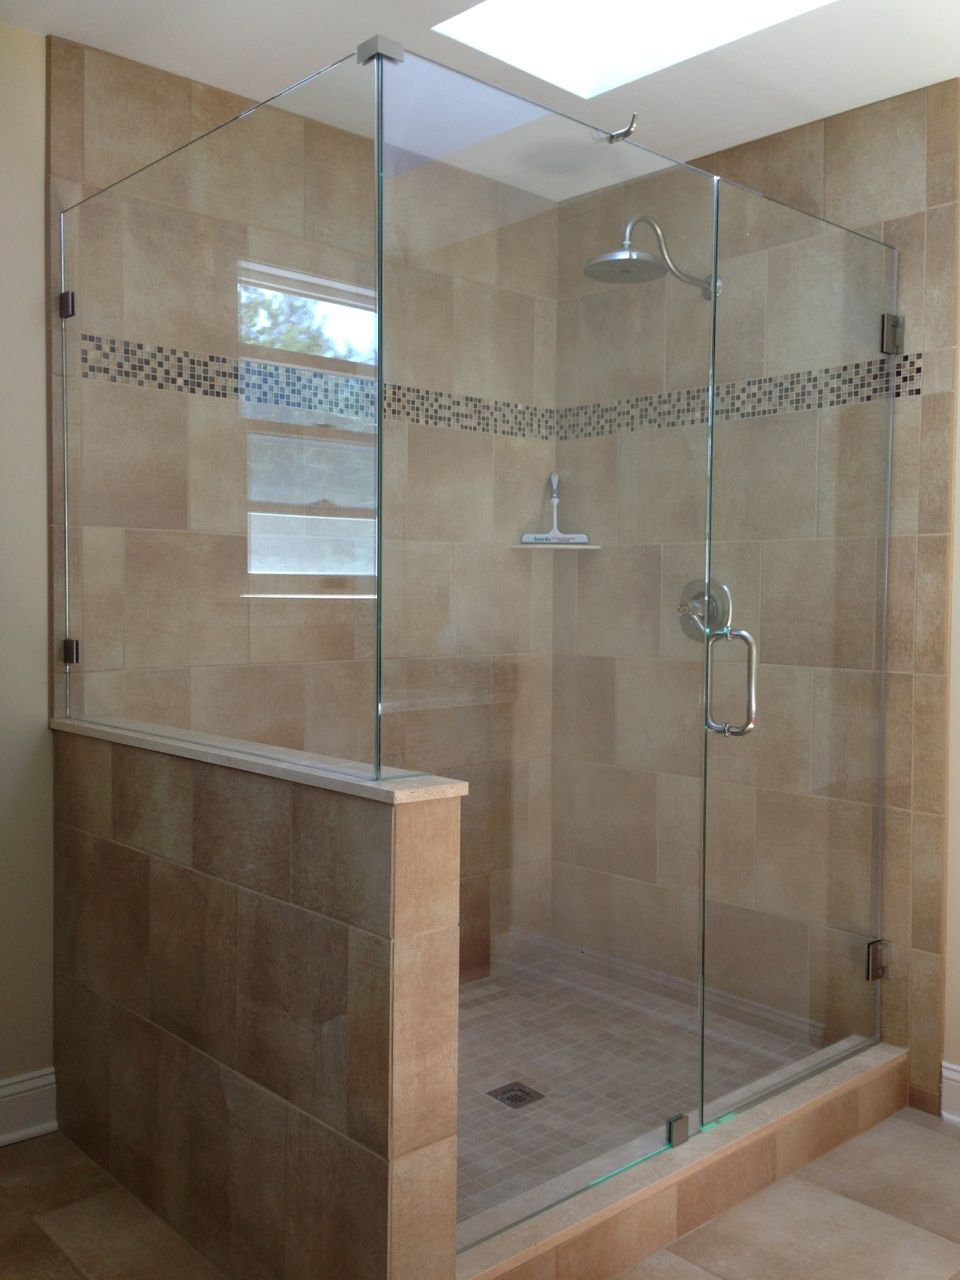 Do We Put A Half Wall Showerman Frameless Shower Door Shower Doors Small Bathroom Makeover Frameless Glass Shower Enclosure